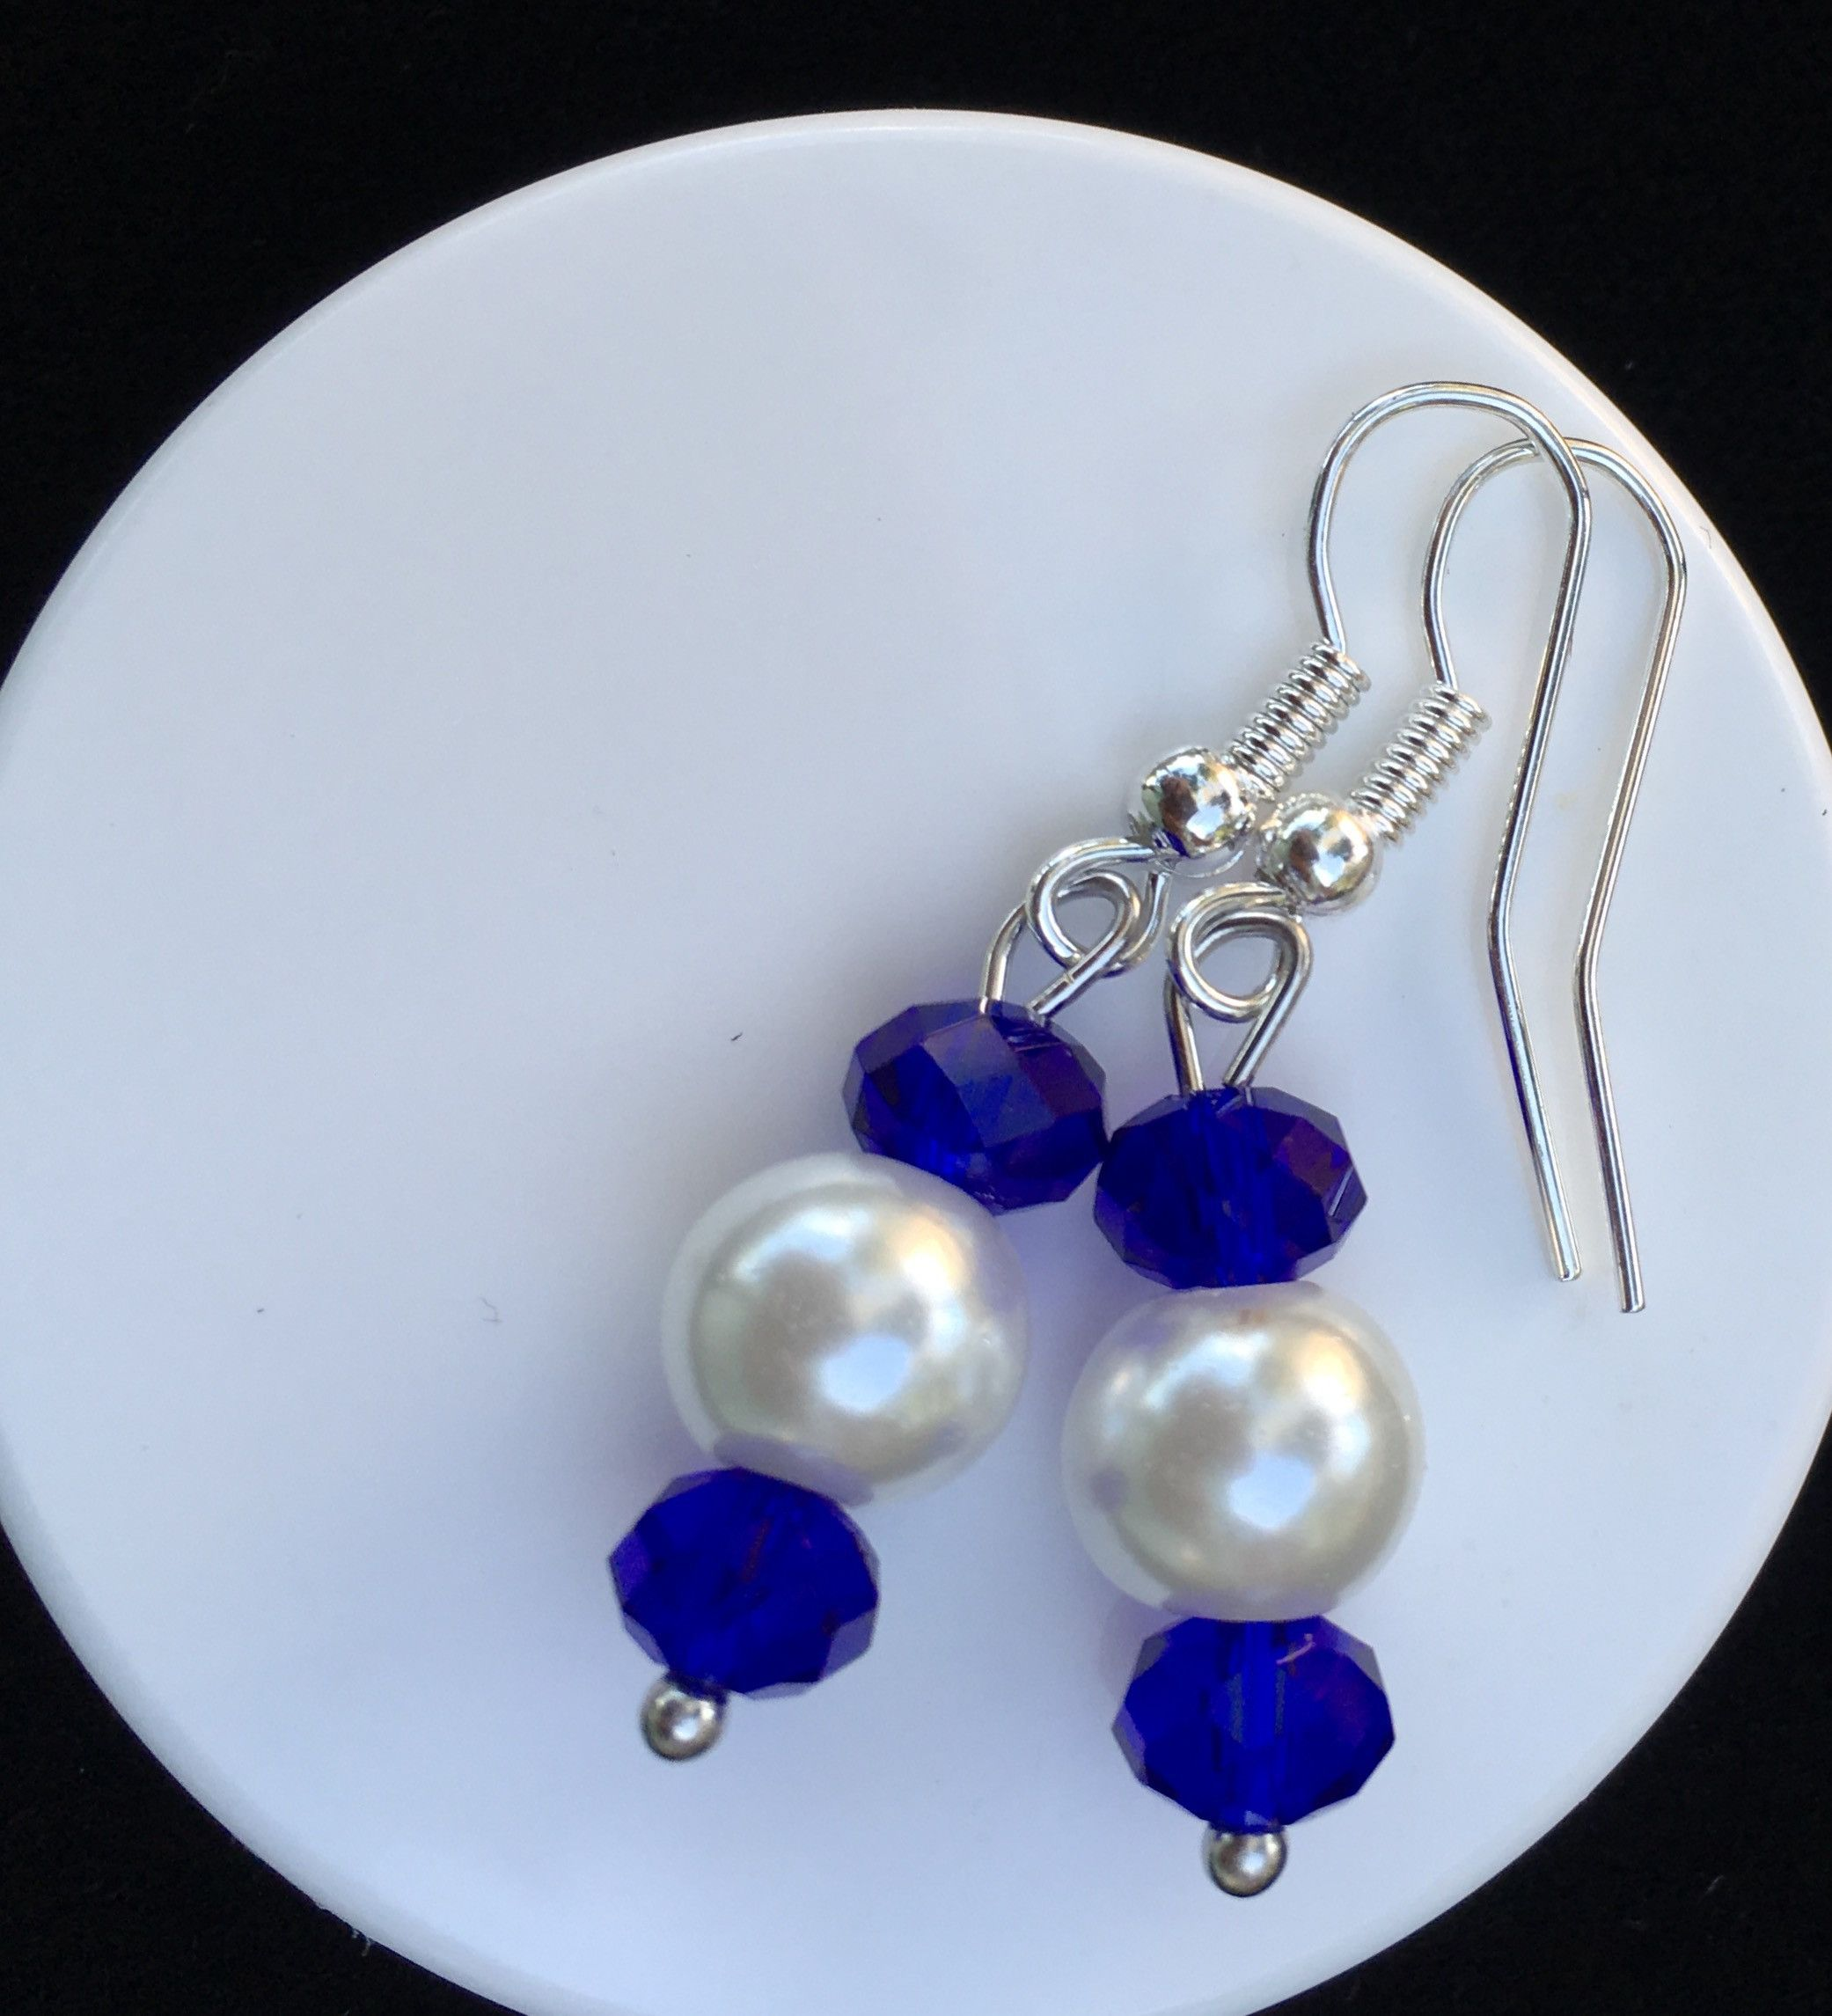 5aa2b2fe5 This set of earrings can be purchased in Gold or Silver, Hook or Post.  Please specify when ordering. They are made with glass (Sapphire) crystals  and white ...